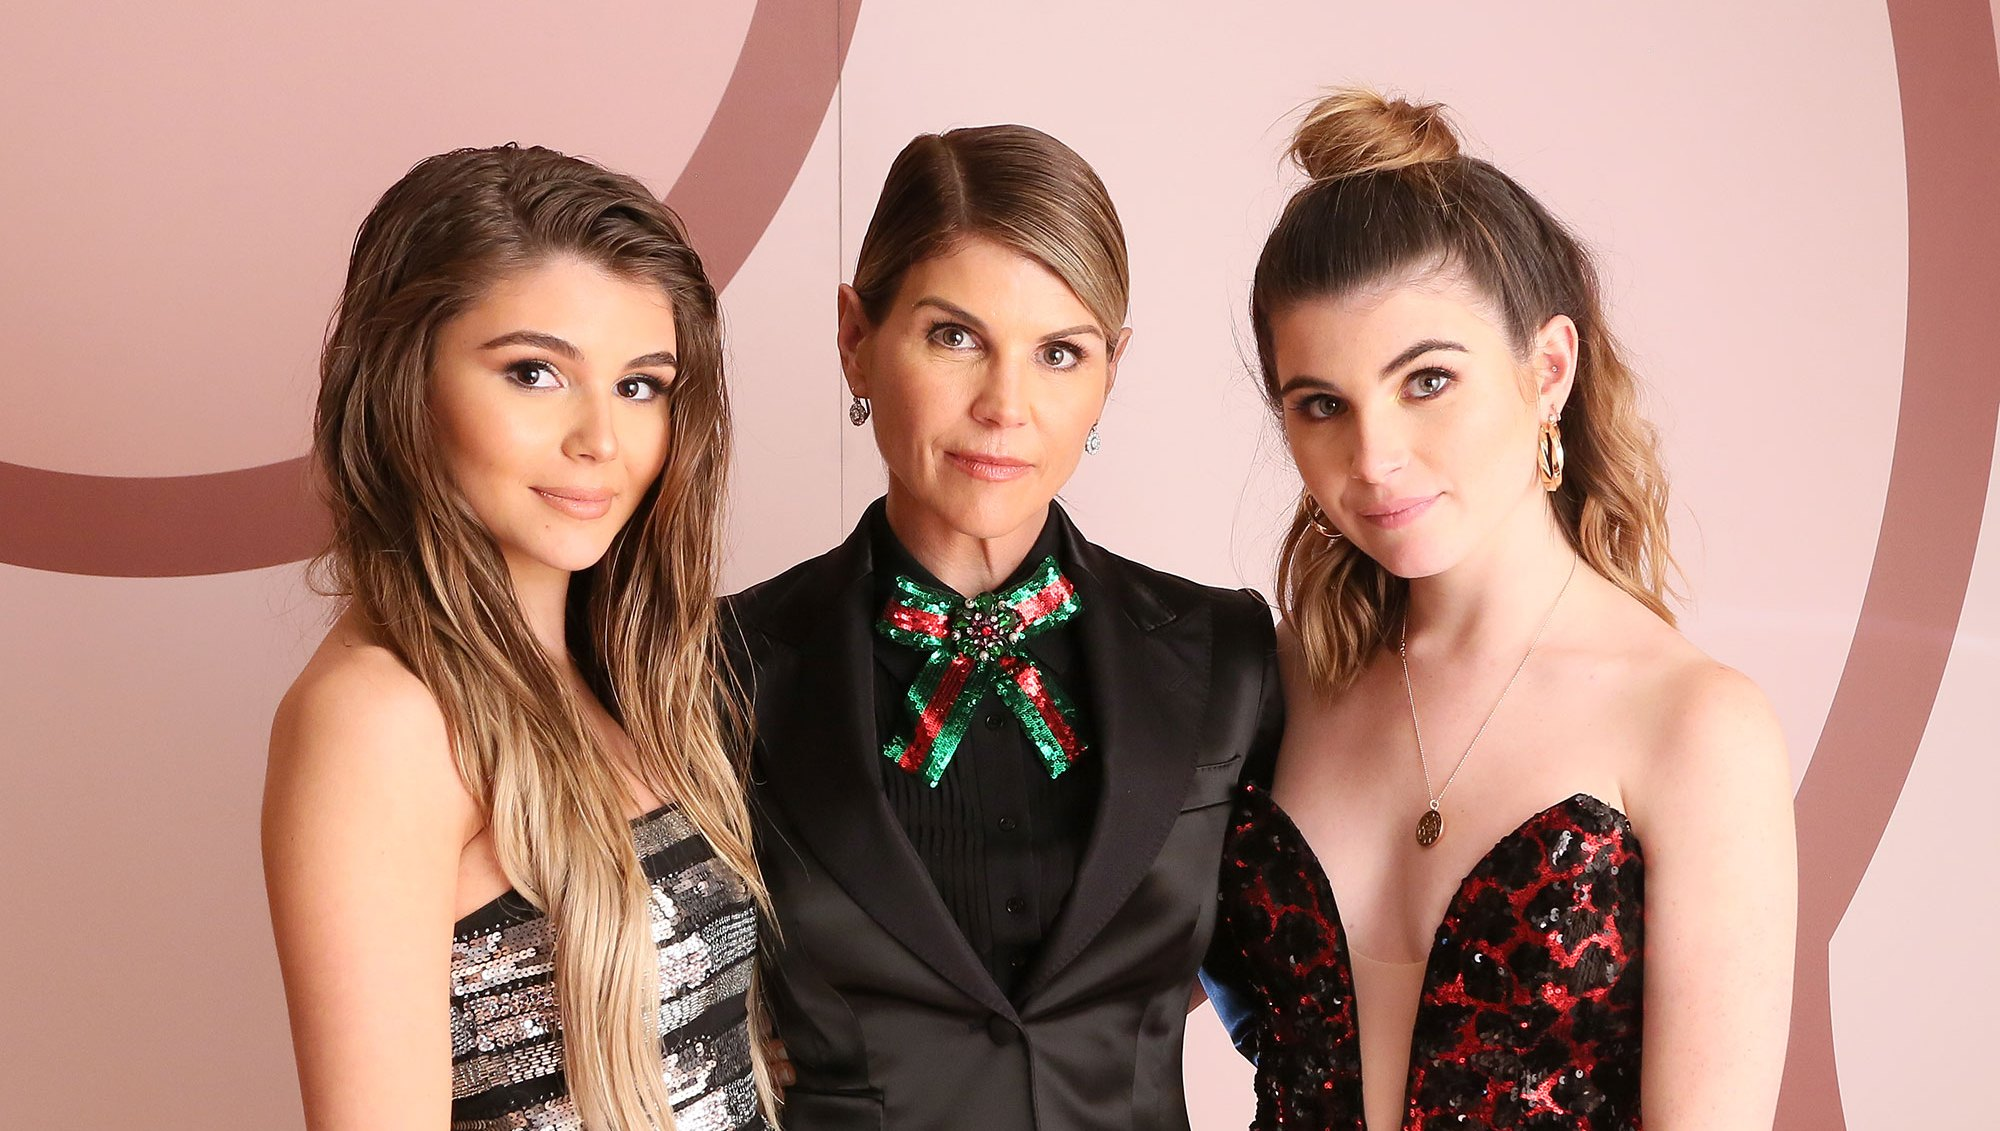 Will Lori Loughlin's Daughters Be Expelled From USC Amid Admissions Scam